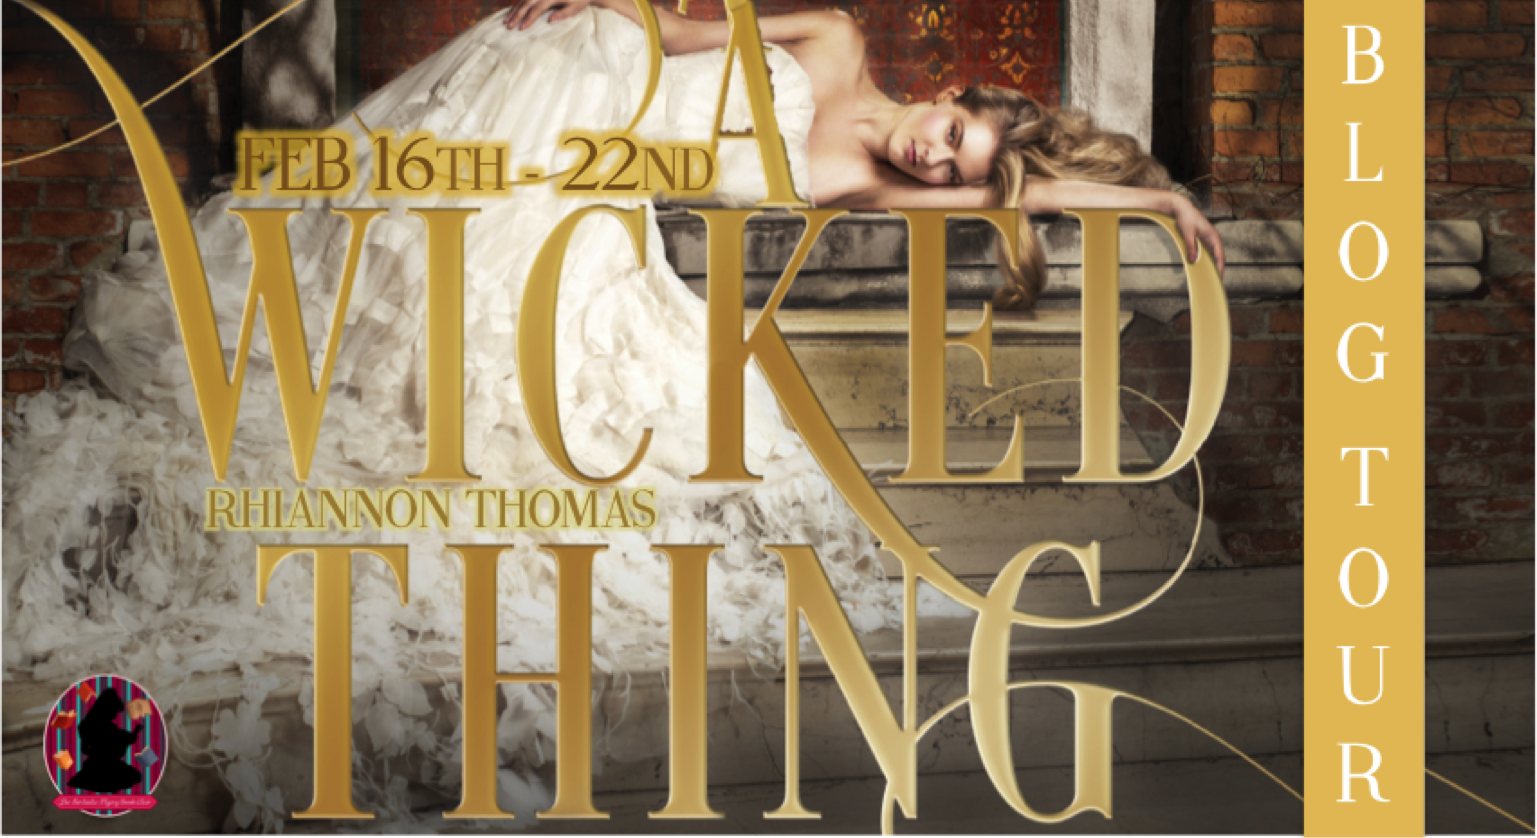 http://theunofficialaddictionbookfanclub.blogspot.com/2014/12/ffbc-blog-tour-wicked-thing-by-rhiannon.html